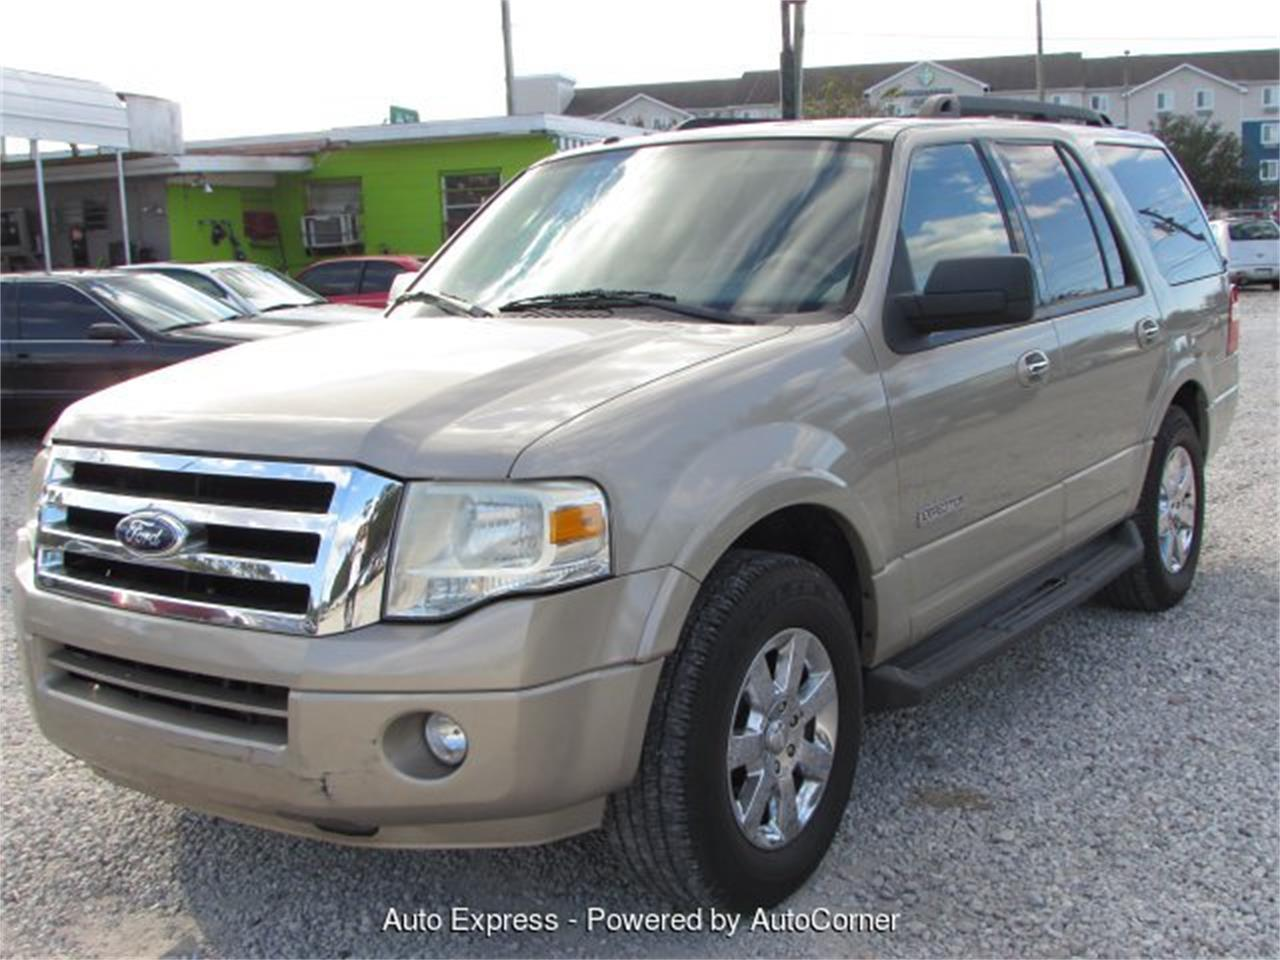 2008 Ford Expedition for sale in Orlando, FL – photo 3